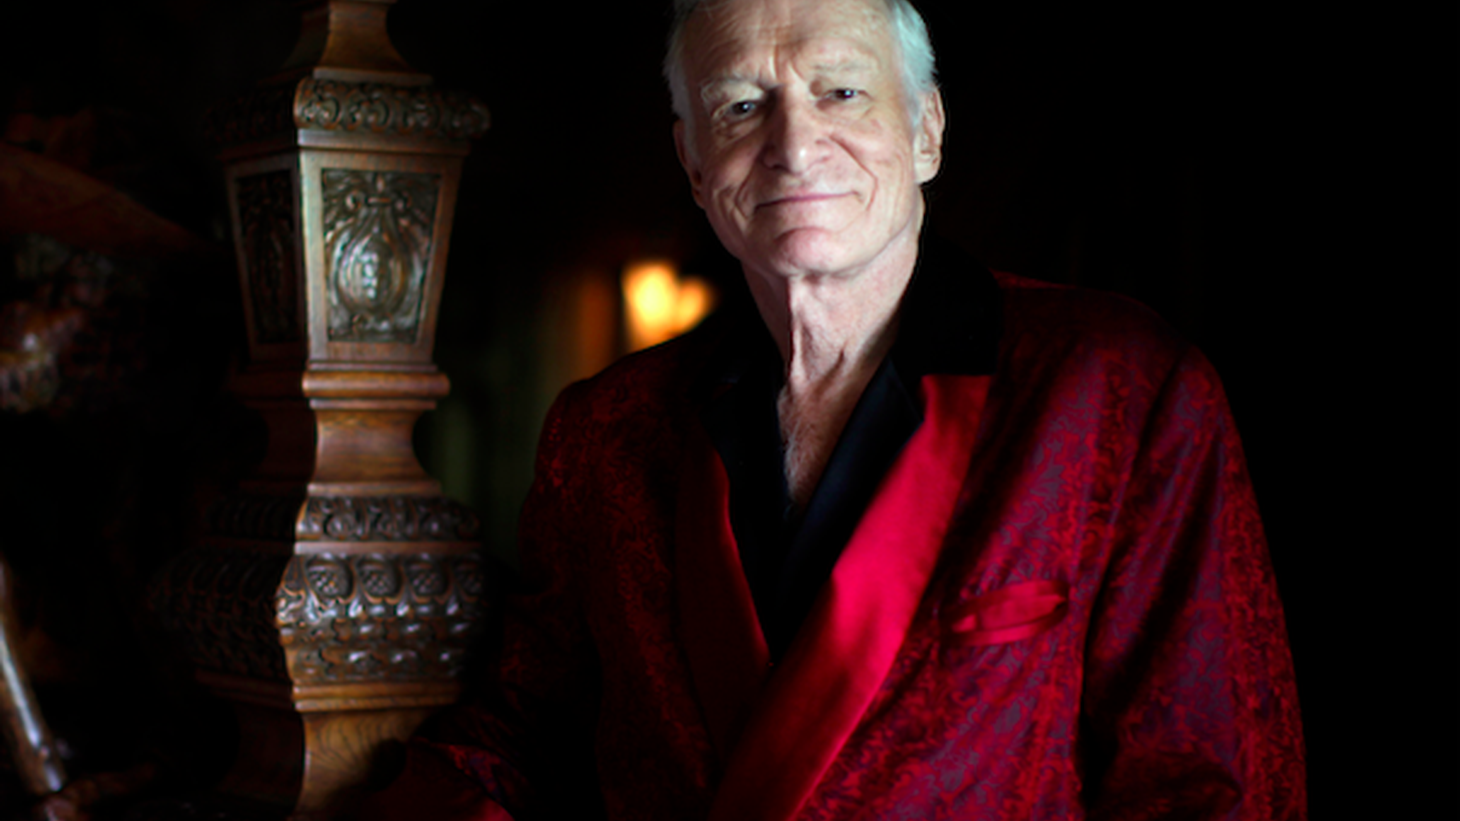 Hugh Hefner is lauded as a man who helped further the cause of sexual liberation and for his early support of civil rights. But he's also criticized for his objectification of women. So what is his legacy?